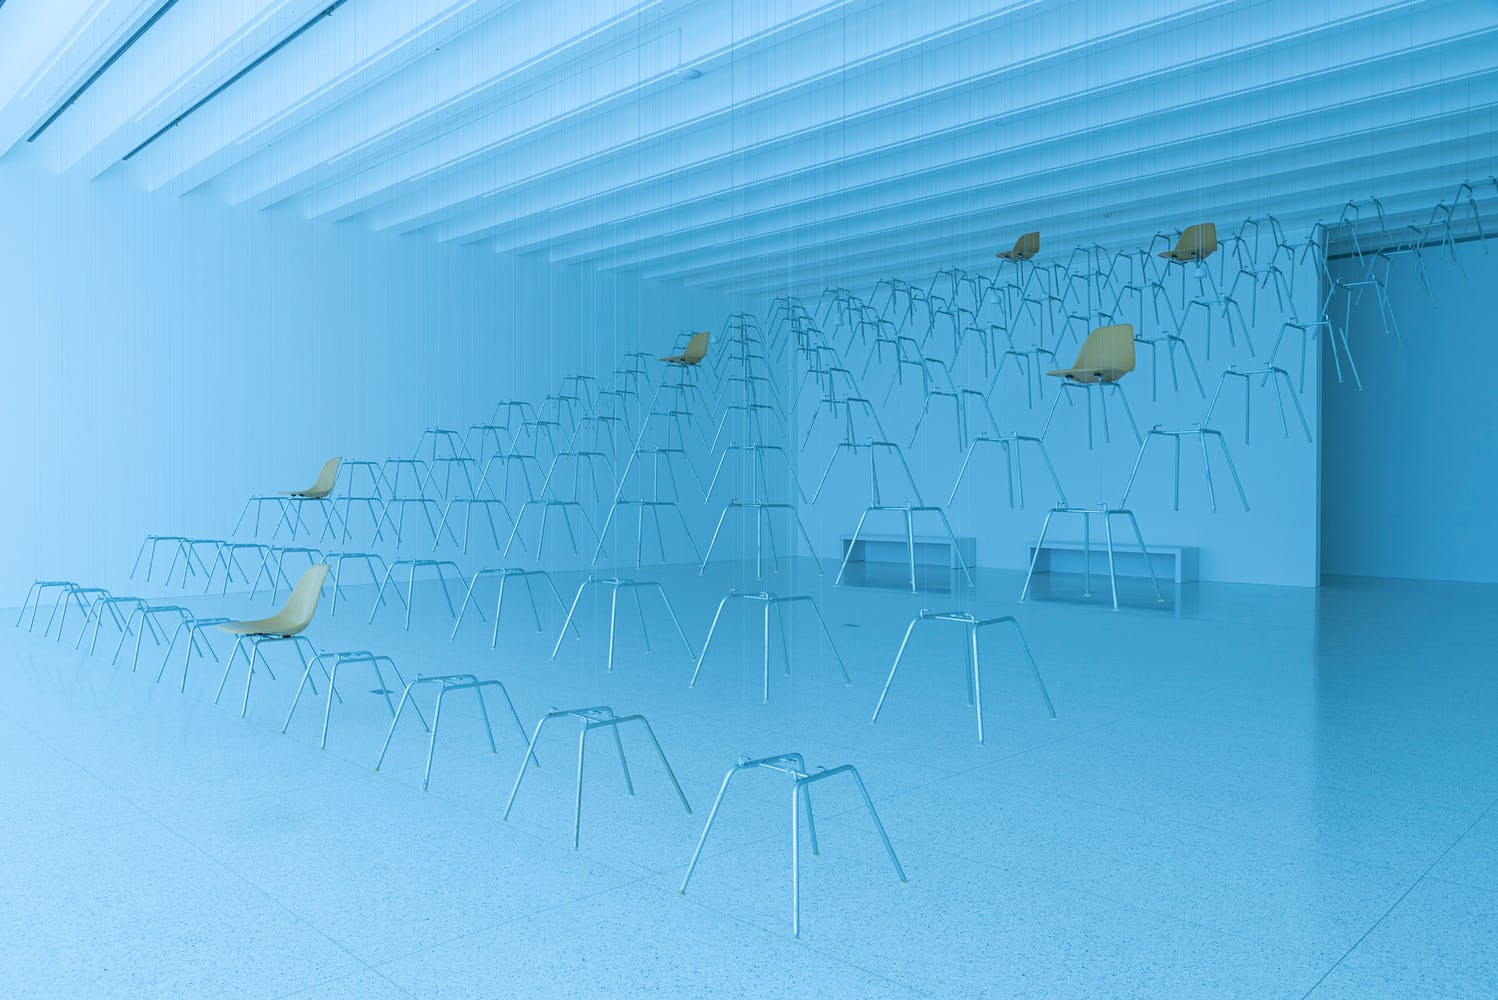 Gallery bathed in blue light with chairs and chair legs suspended from the ceiling